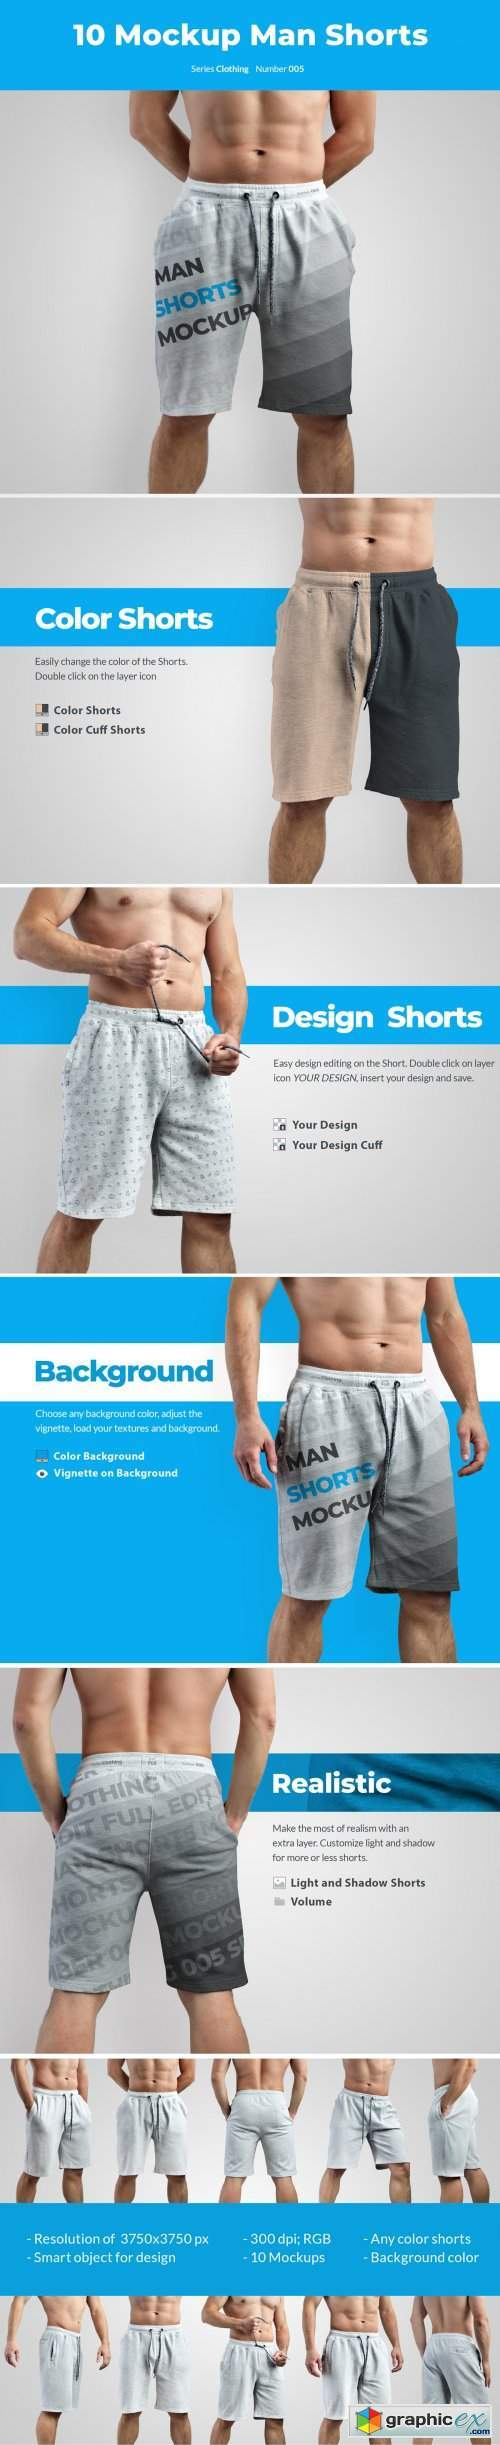 10 Mockups Athletic Shorts Man